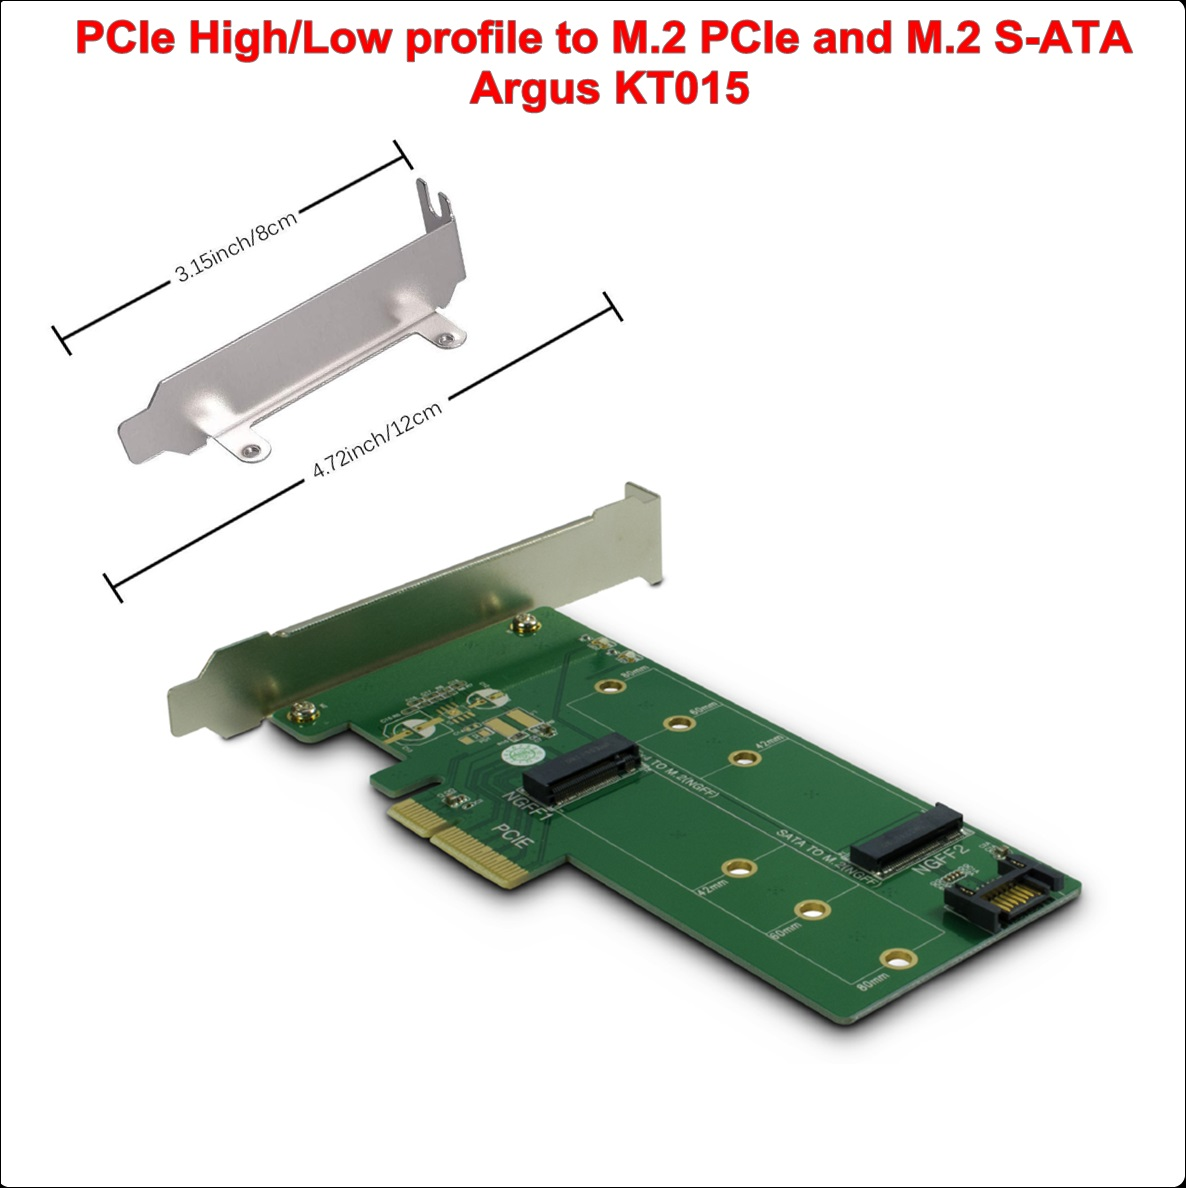 PCI-E High Low to M.2 PCIe and M.2 S-ATA KT015